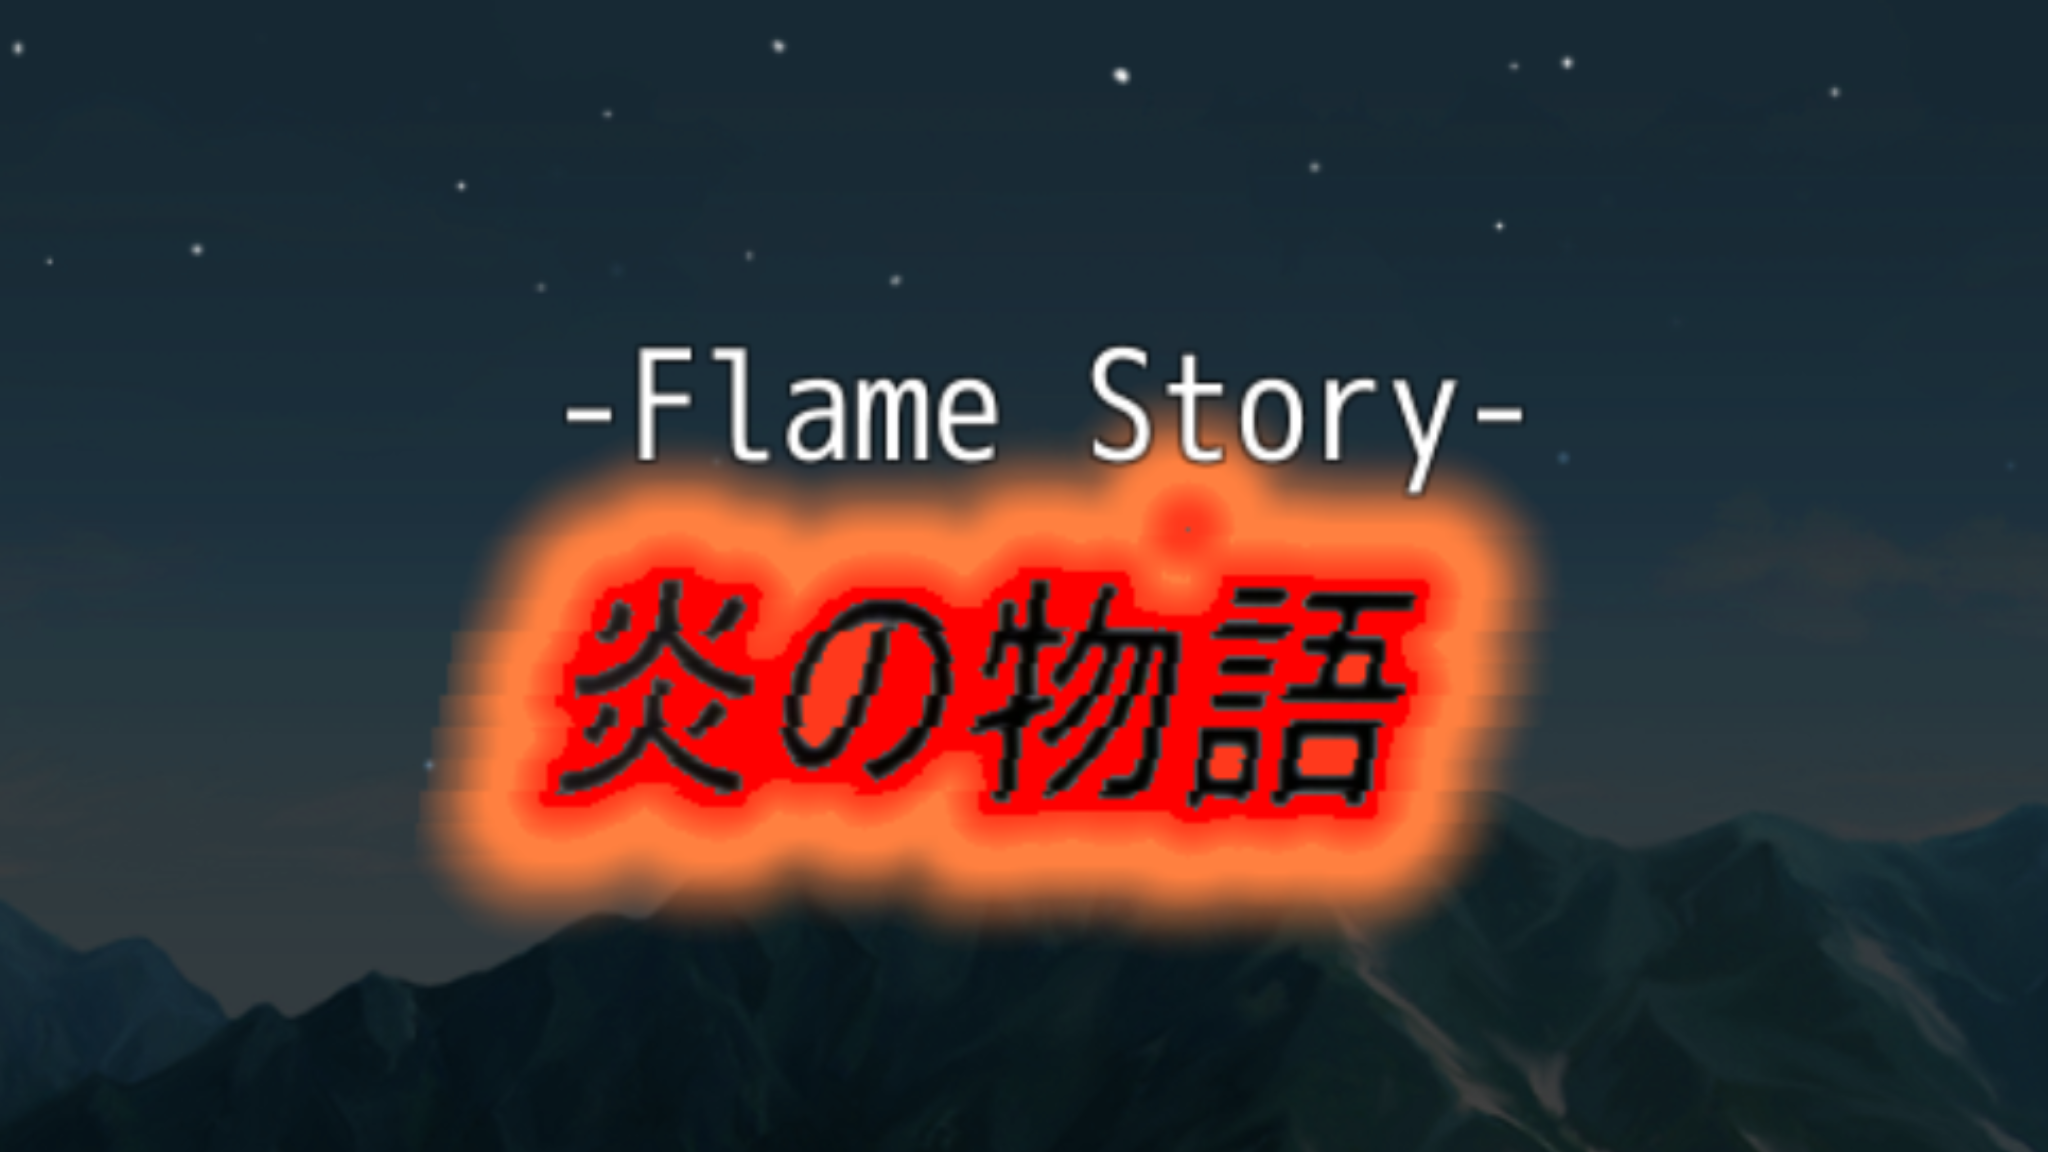 Flame Story